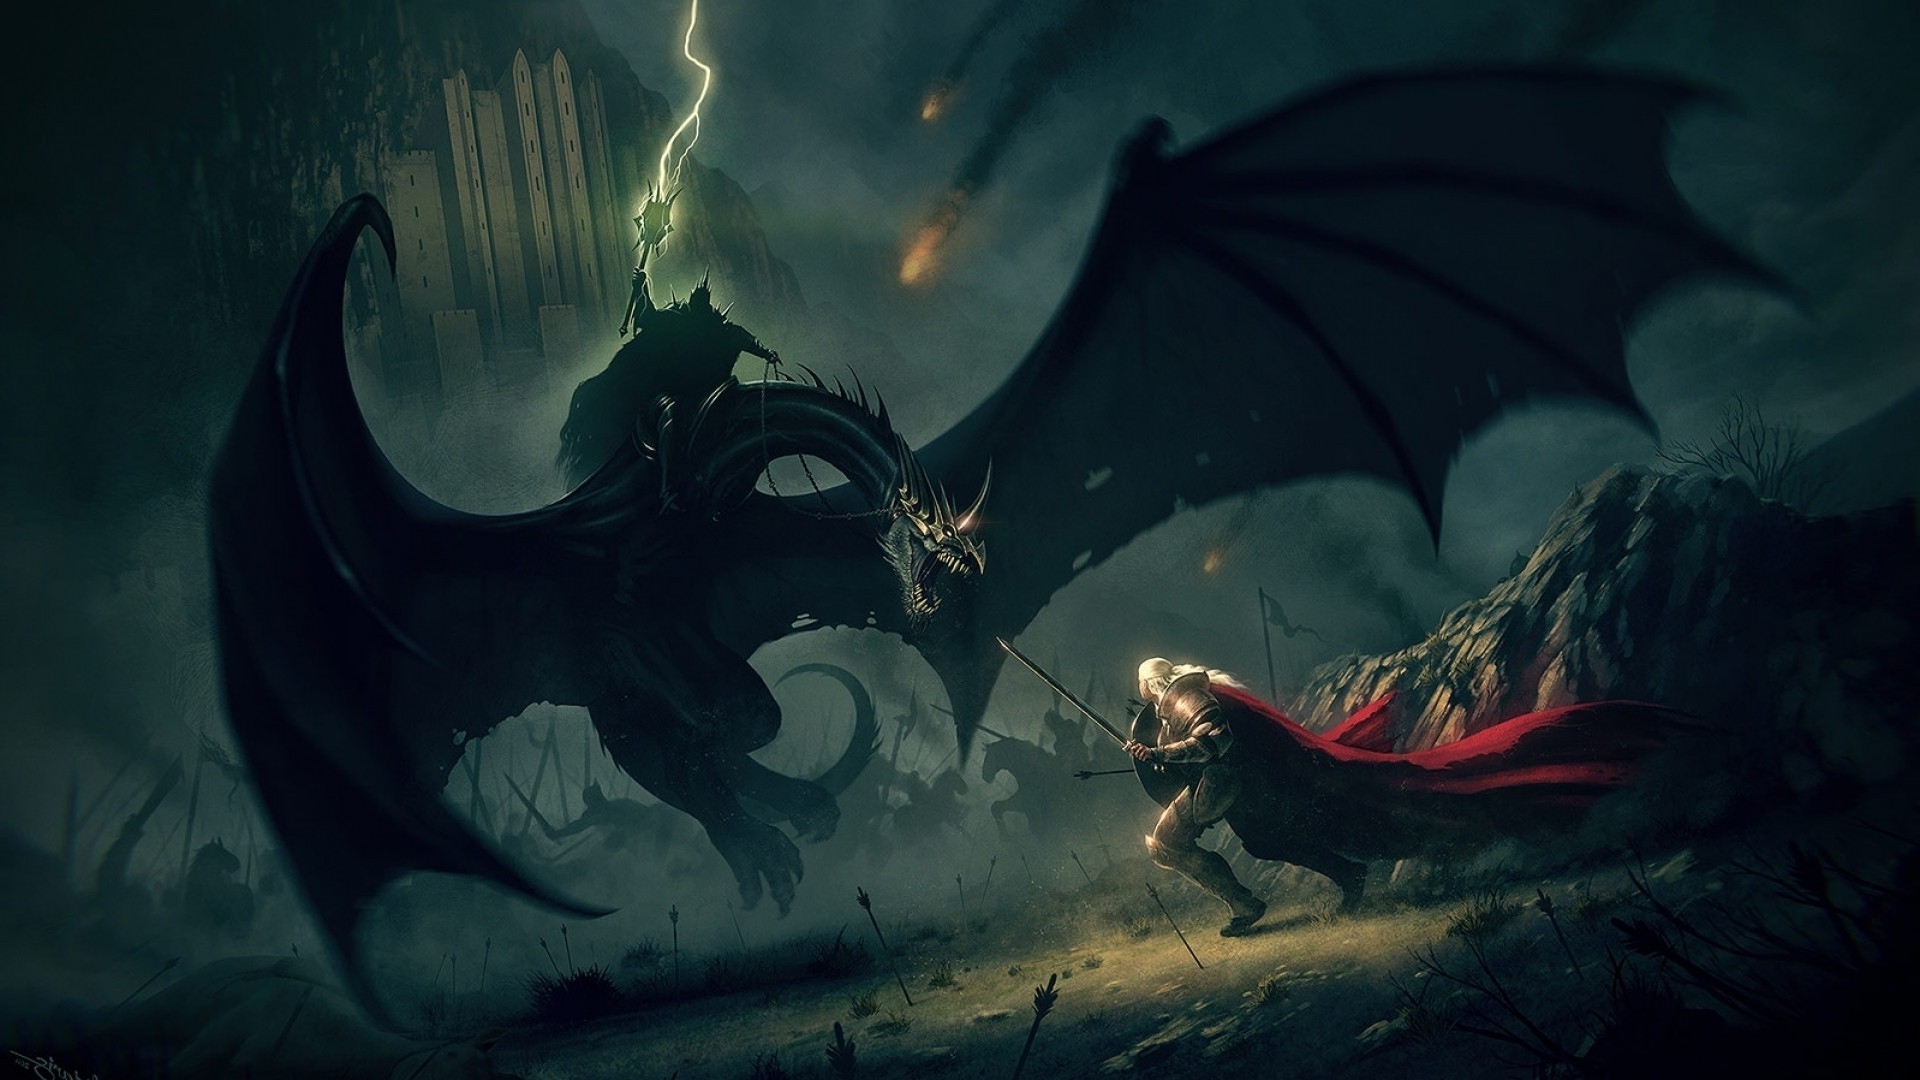 1920x1080, J - Lord Of The Rings Art Witch King - HD Wallpaper